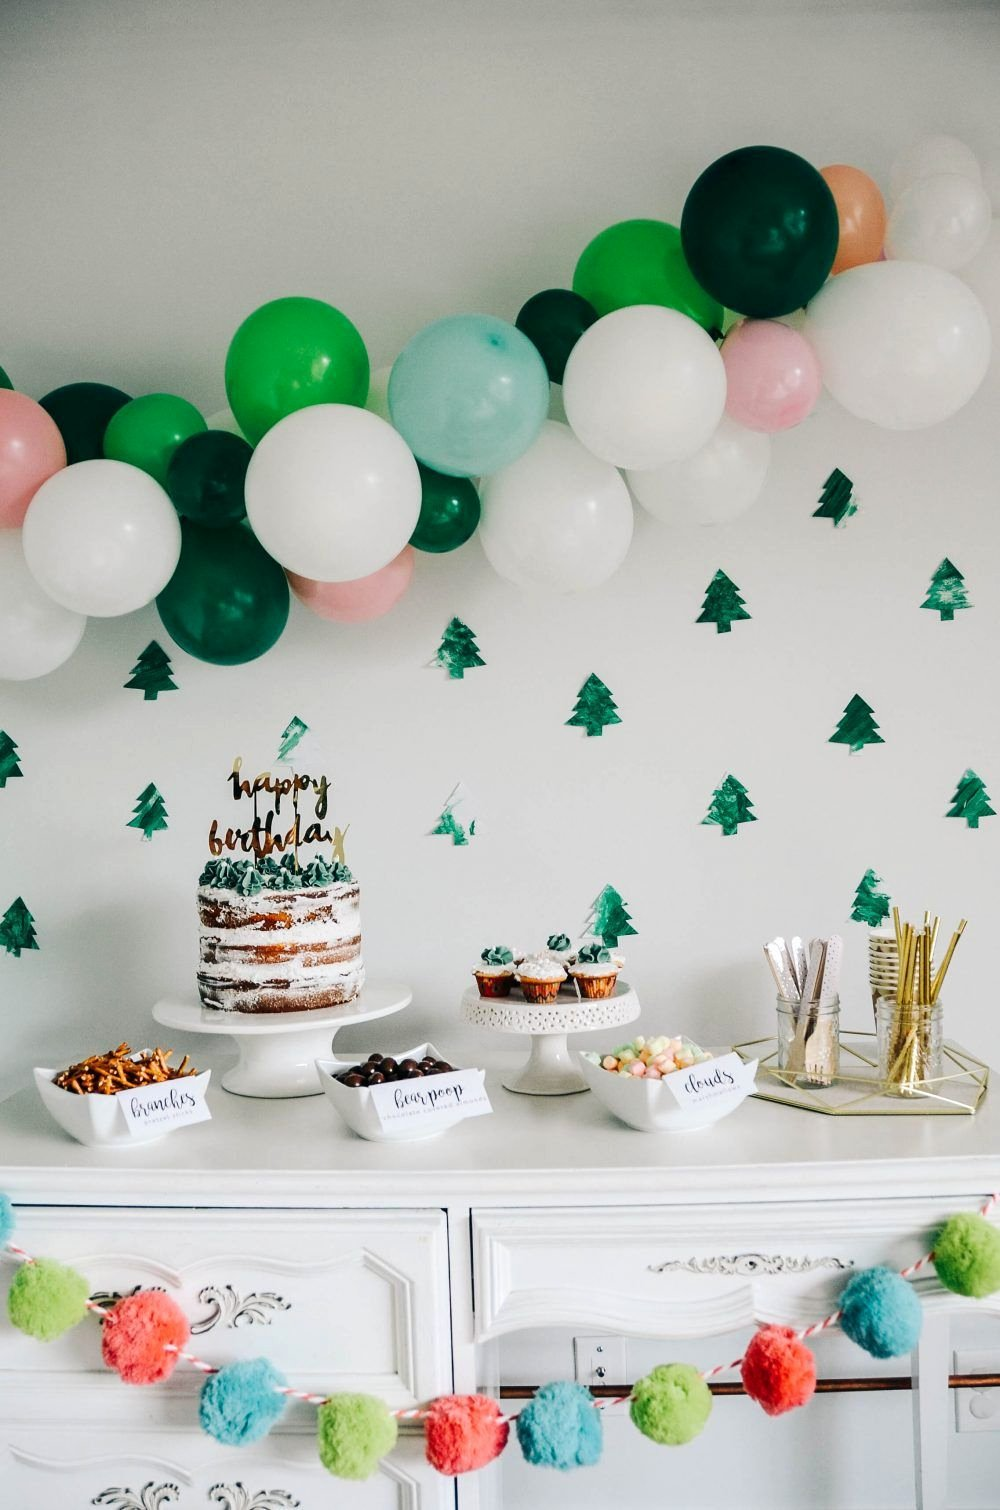 Simple Birthday Decoration Ideas at Home for Boy Inspirational Woodlane Fourest forest themed Birthday Party